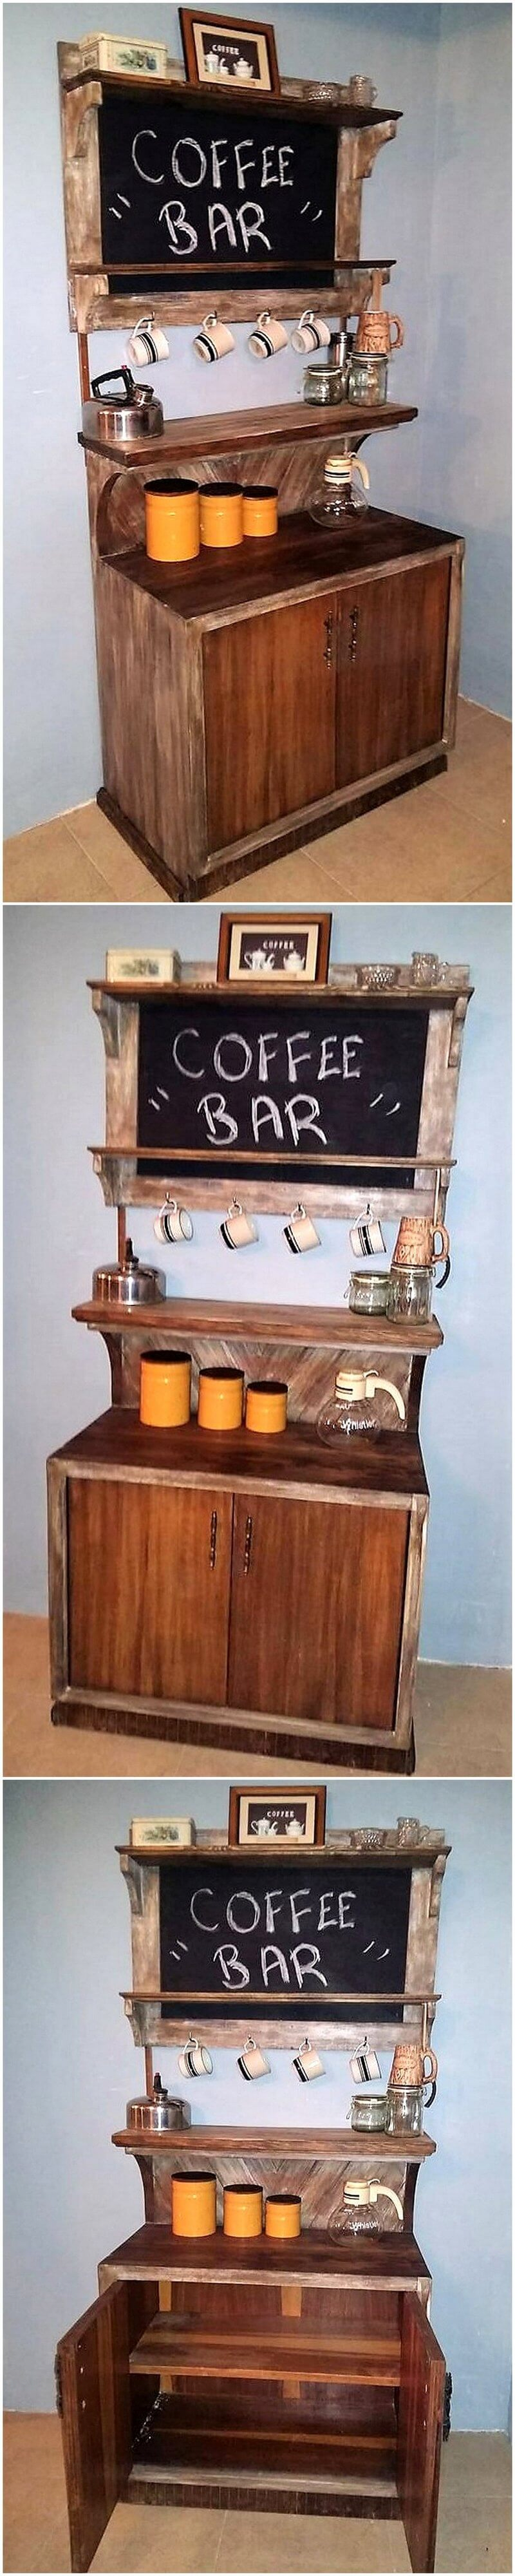 recycled pallets Coffee Bar